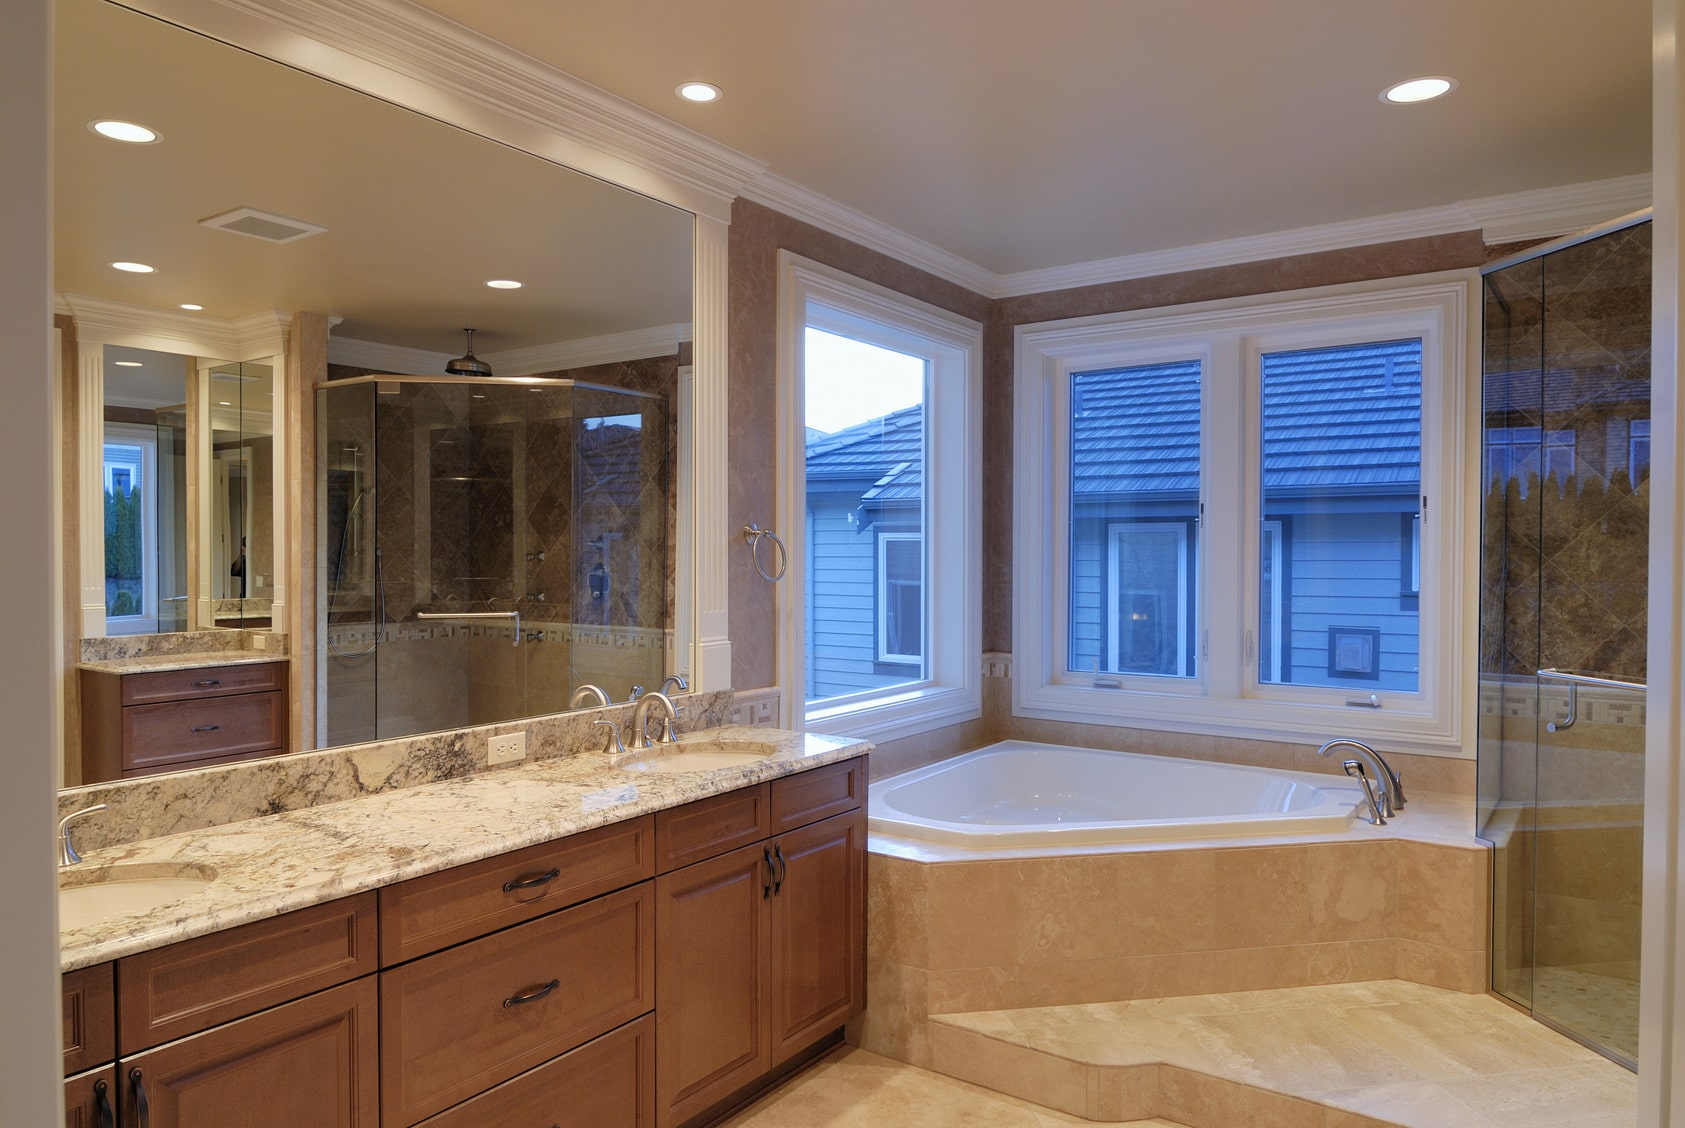 W.B. Dickenson Bathroom Remodeling East Hartford CT